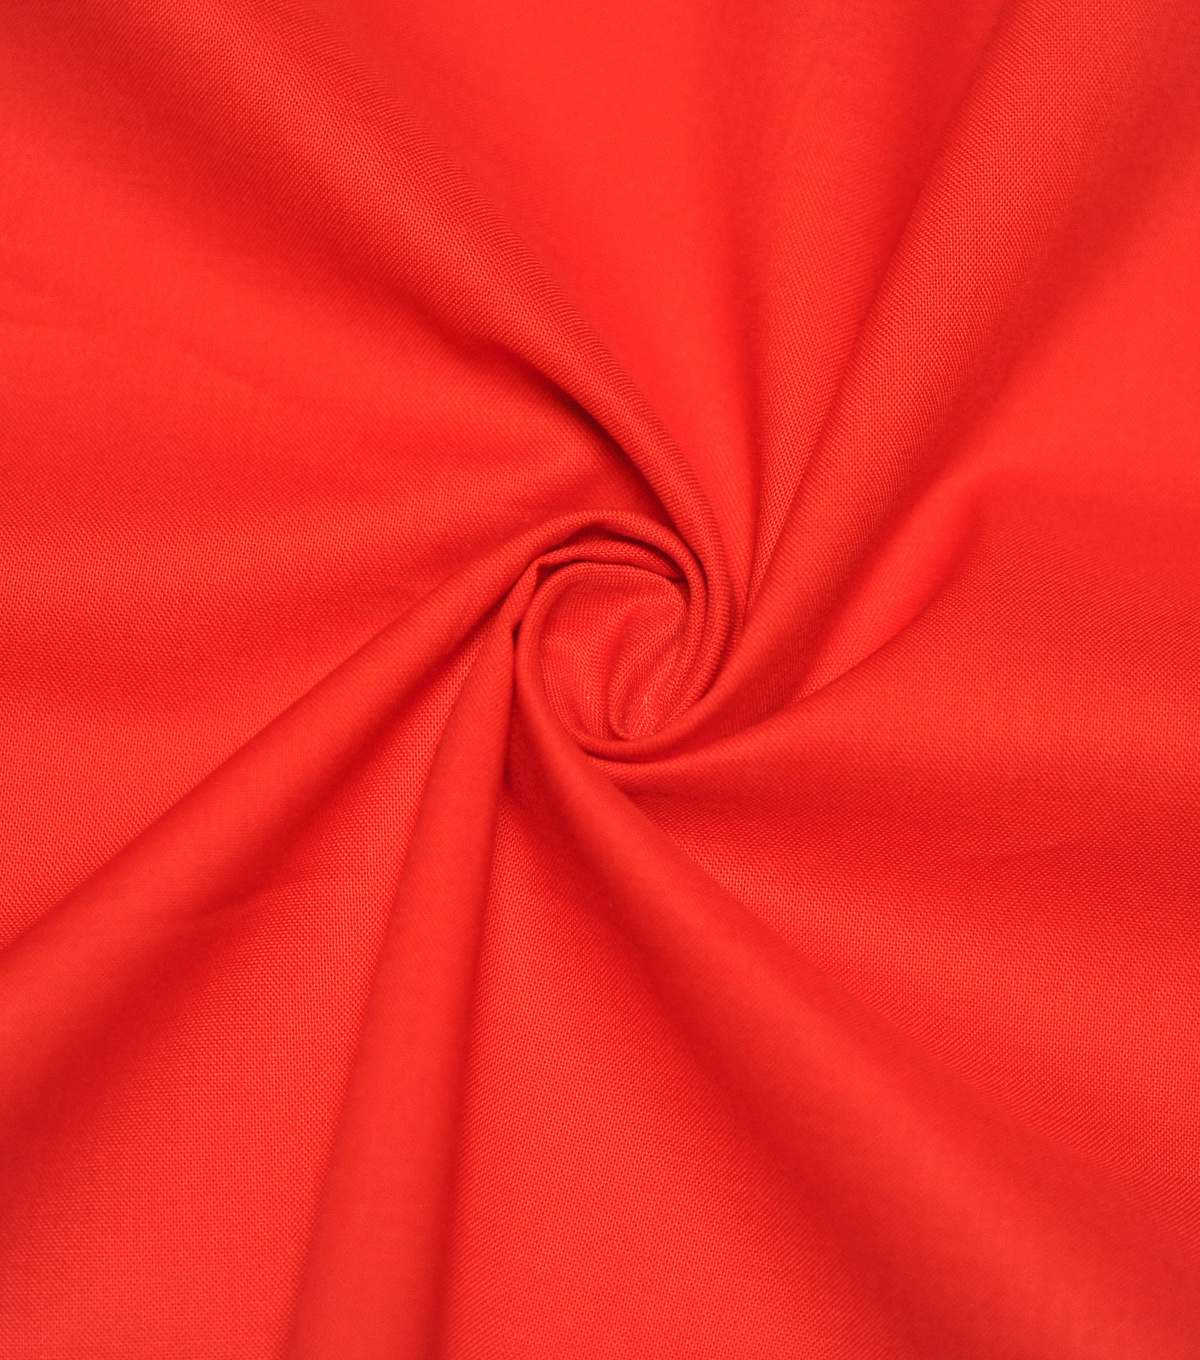 Premium Cotton Fabric 44\u0027\u0027-Poppy Red